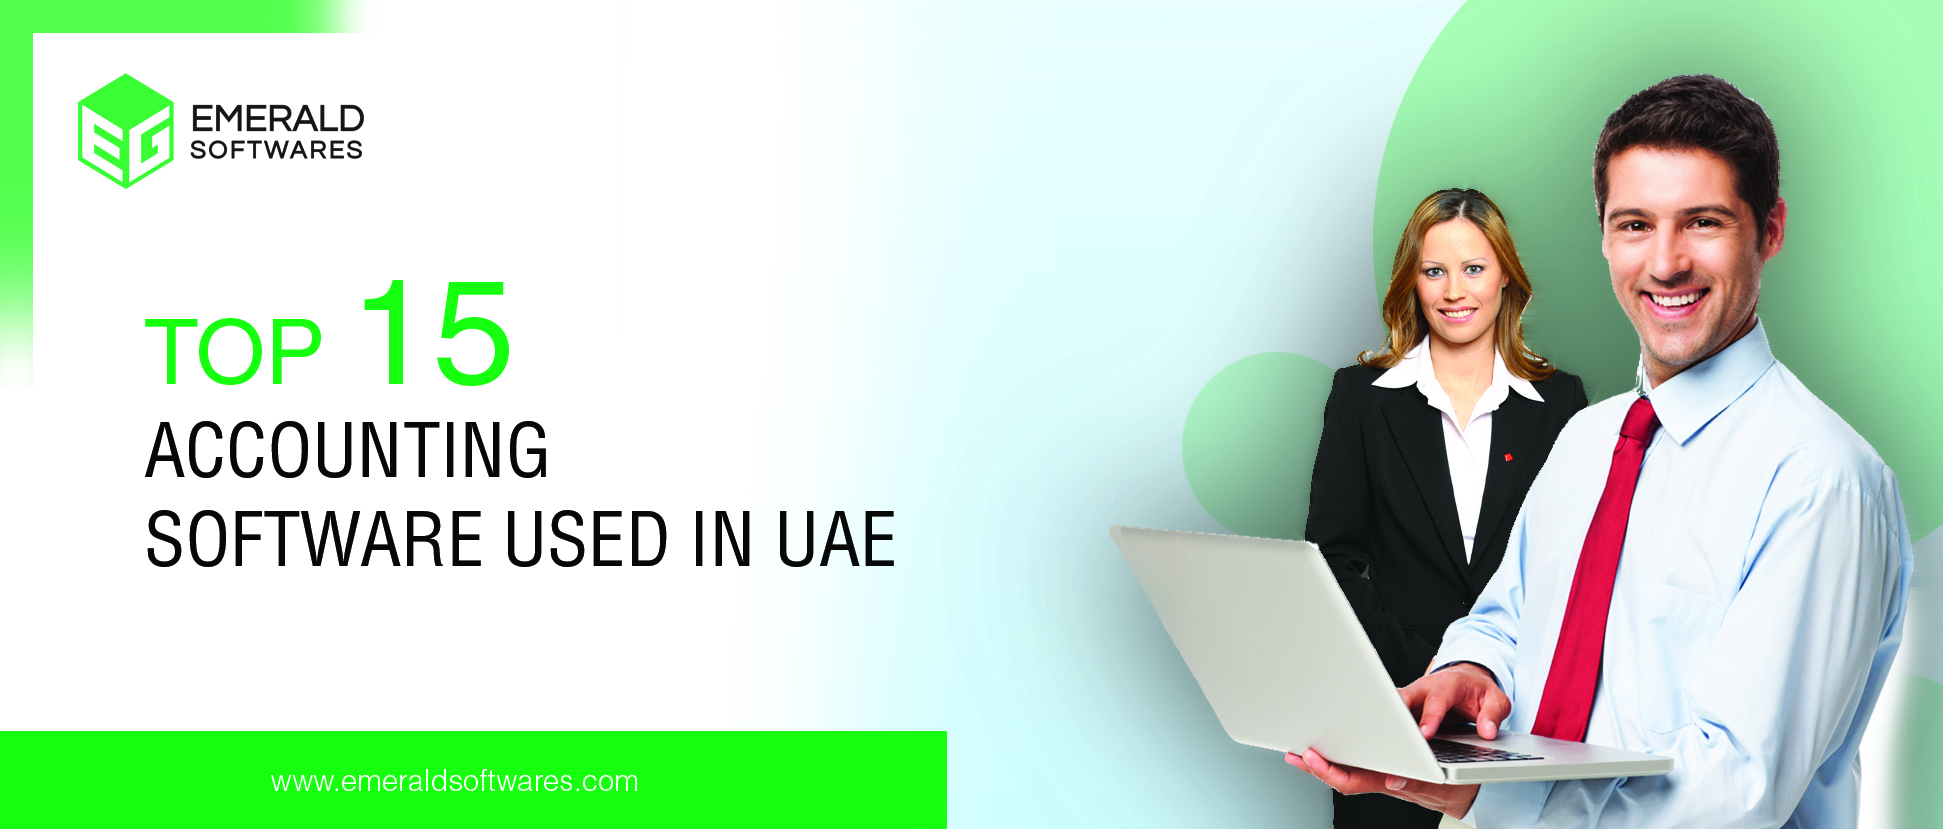 Top 15 Accounting Software used in Dubai, UAE